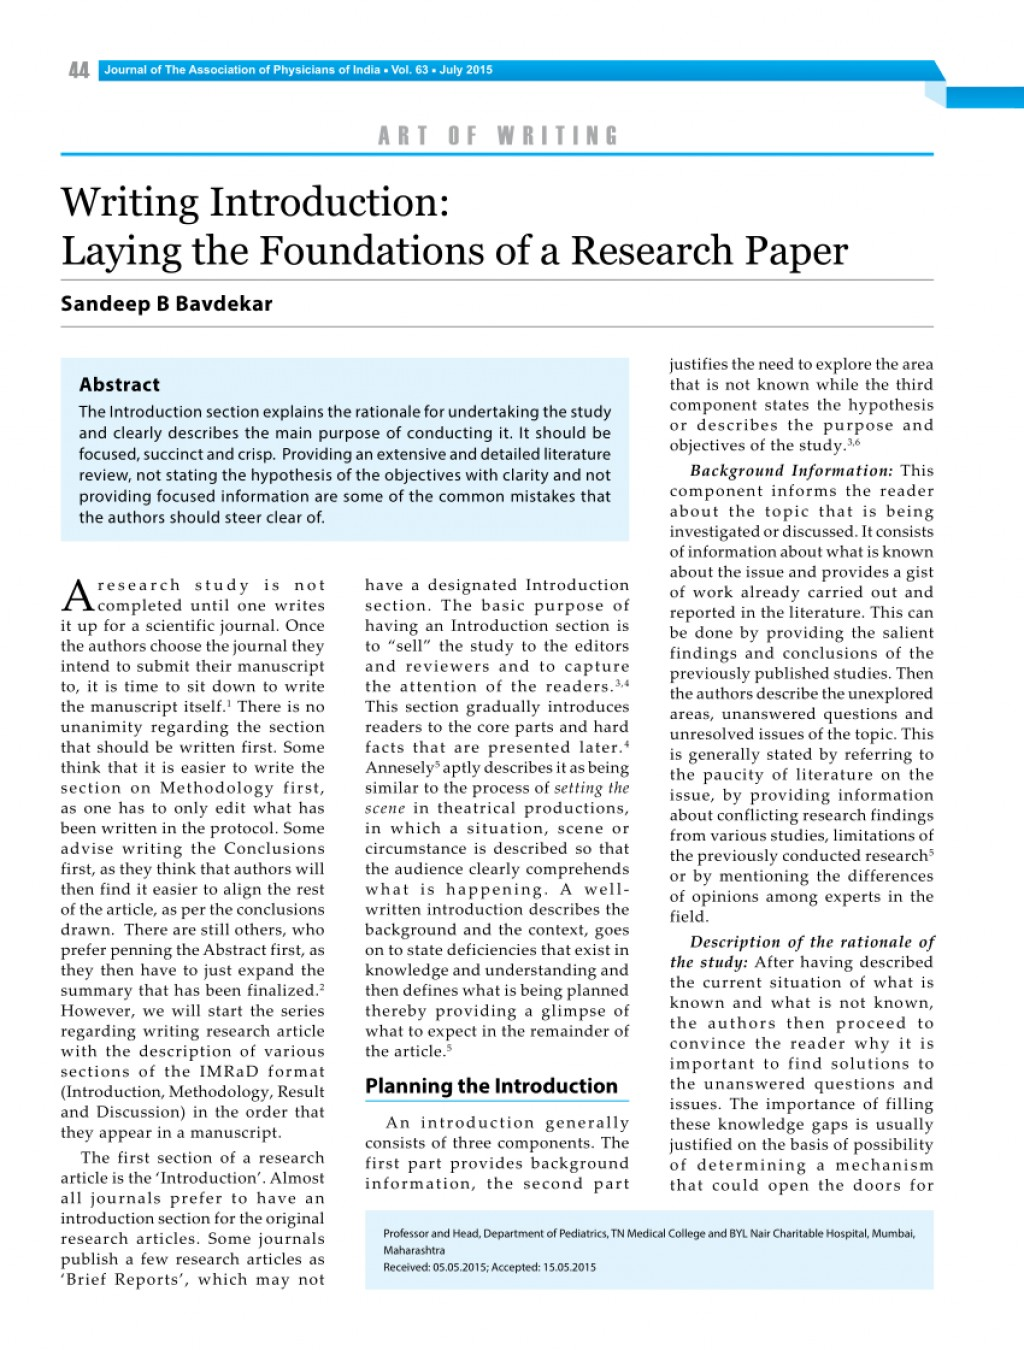 004 Largepreview Research Paper Writingn Introduction To Top Writing An A The Scientific Middle School Paragraph For Large